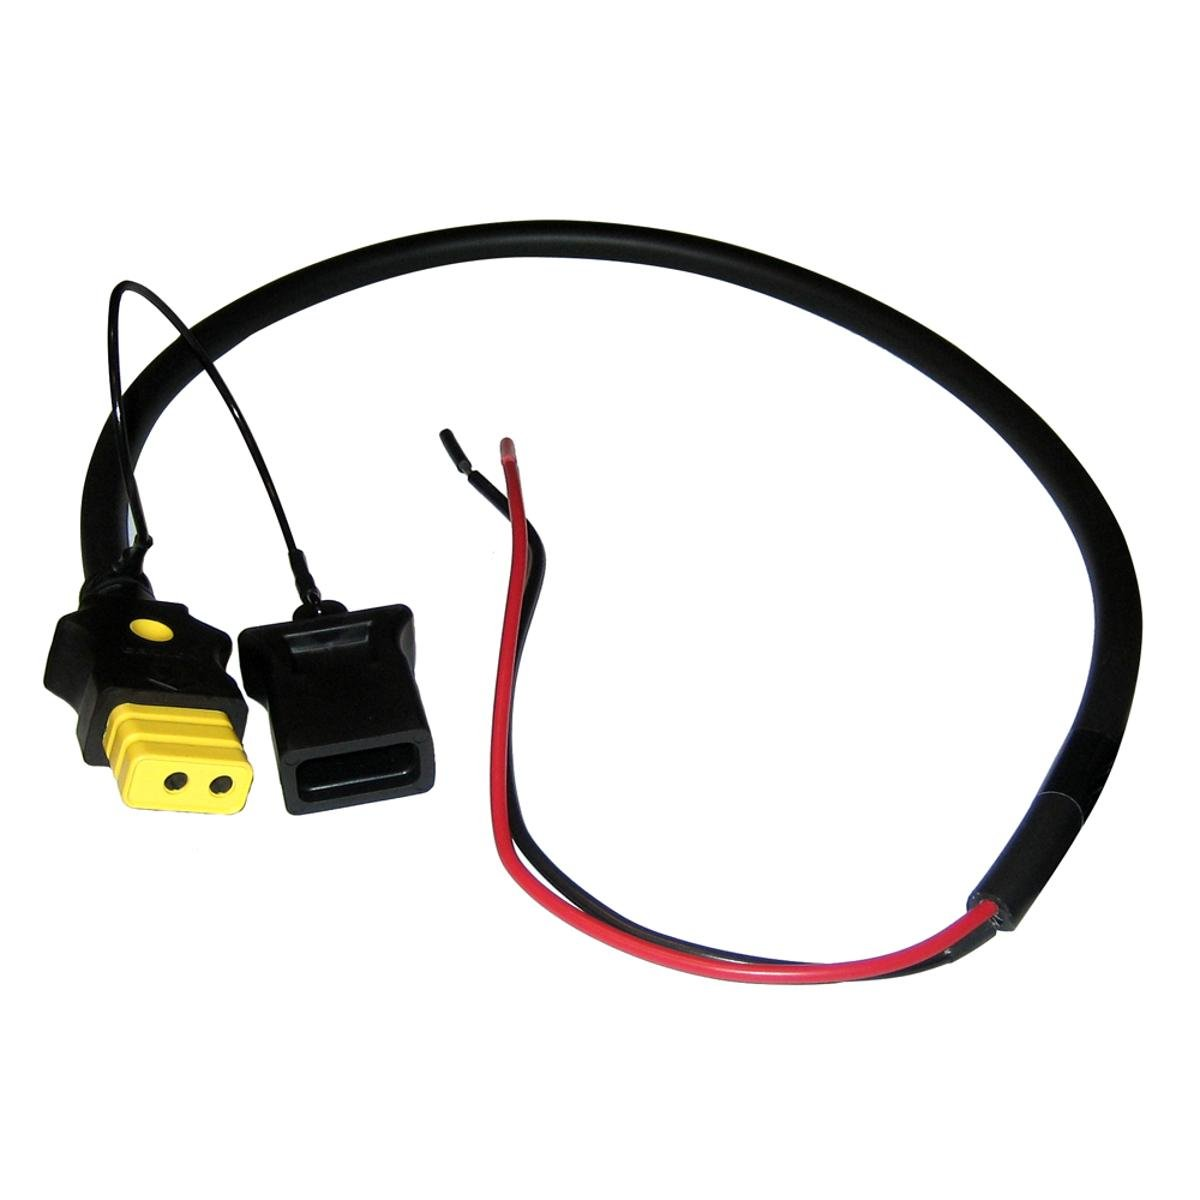 Cannon 3393200 Battery Side Downrigger Cable   B01LZITUHX